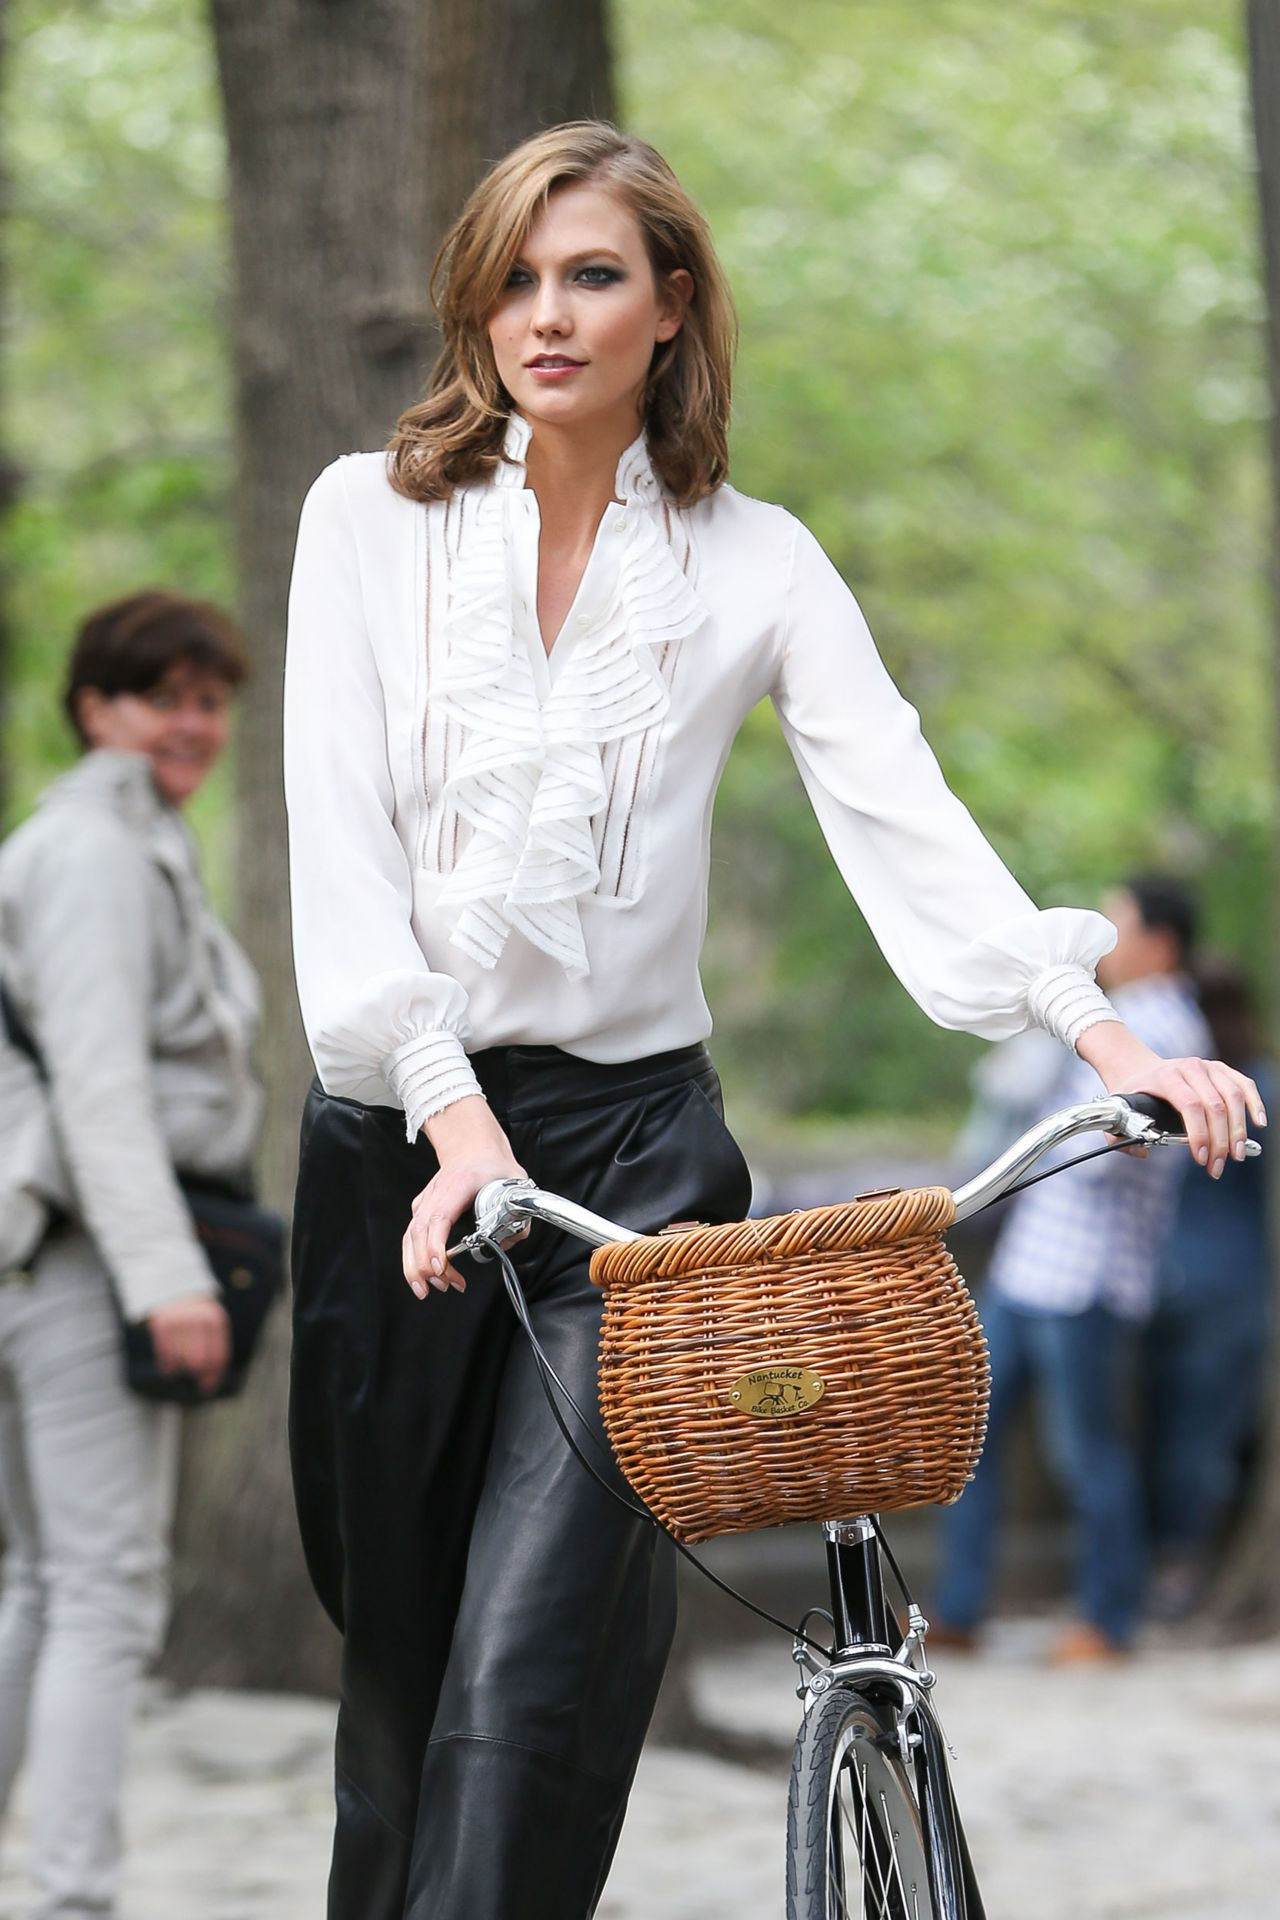 Karlie Kloss - Fashion Photoshoot in New York City - May 2014